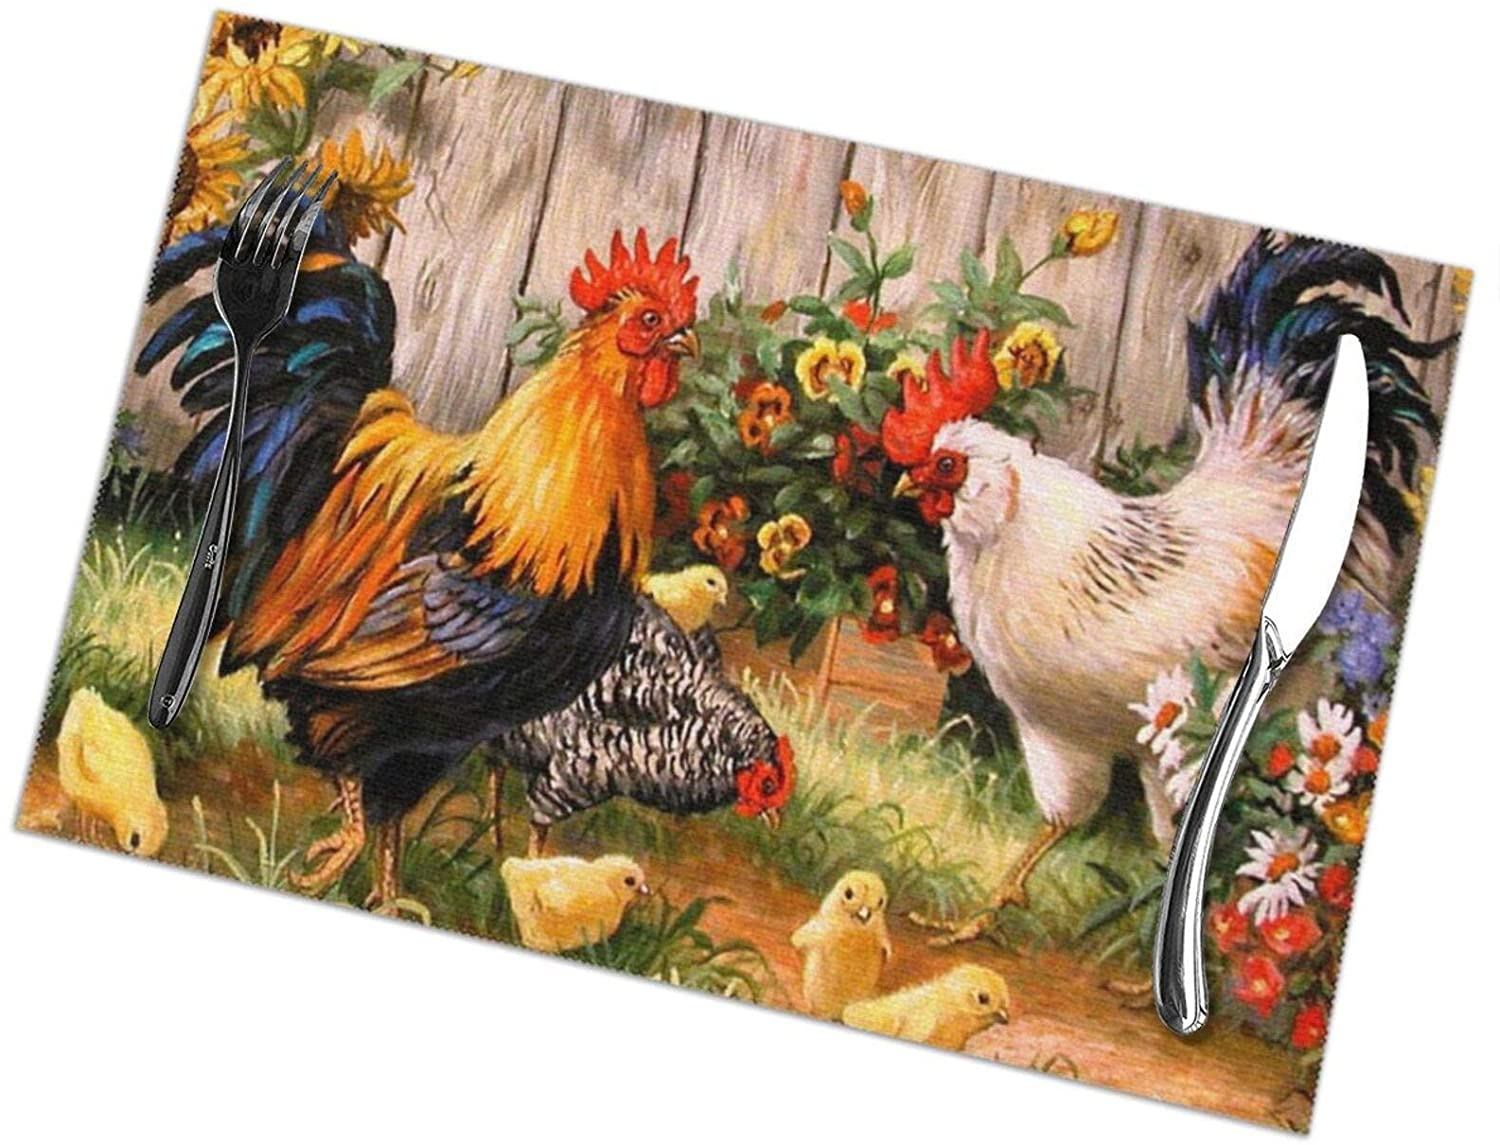 NiYoung Dinner Table Mats Set of 6 Placemats Washable Woven Heat Resistant Easy to Clean Non-Slip Placemats - Chicken Rooster Garden Flowers Painting